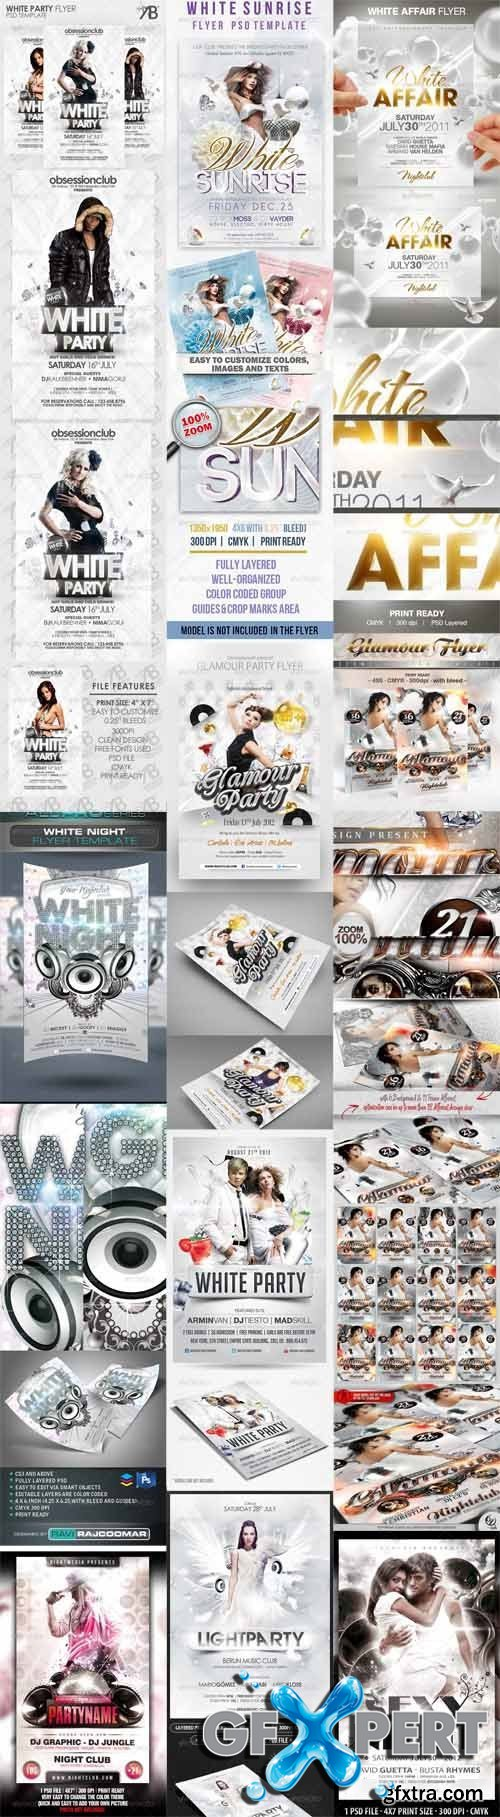 Free Graphicriver Templates Download – quantumgaming.co